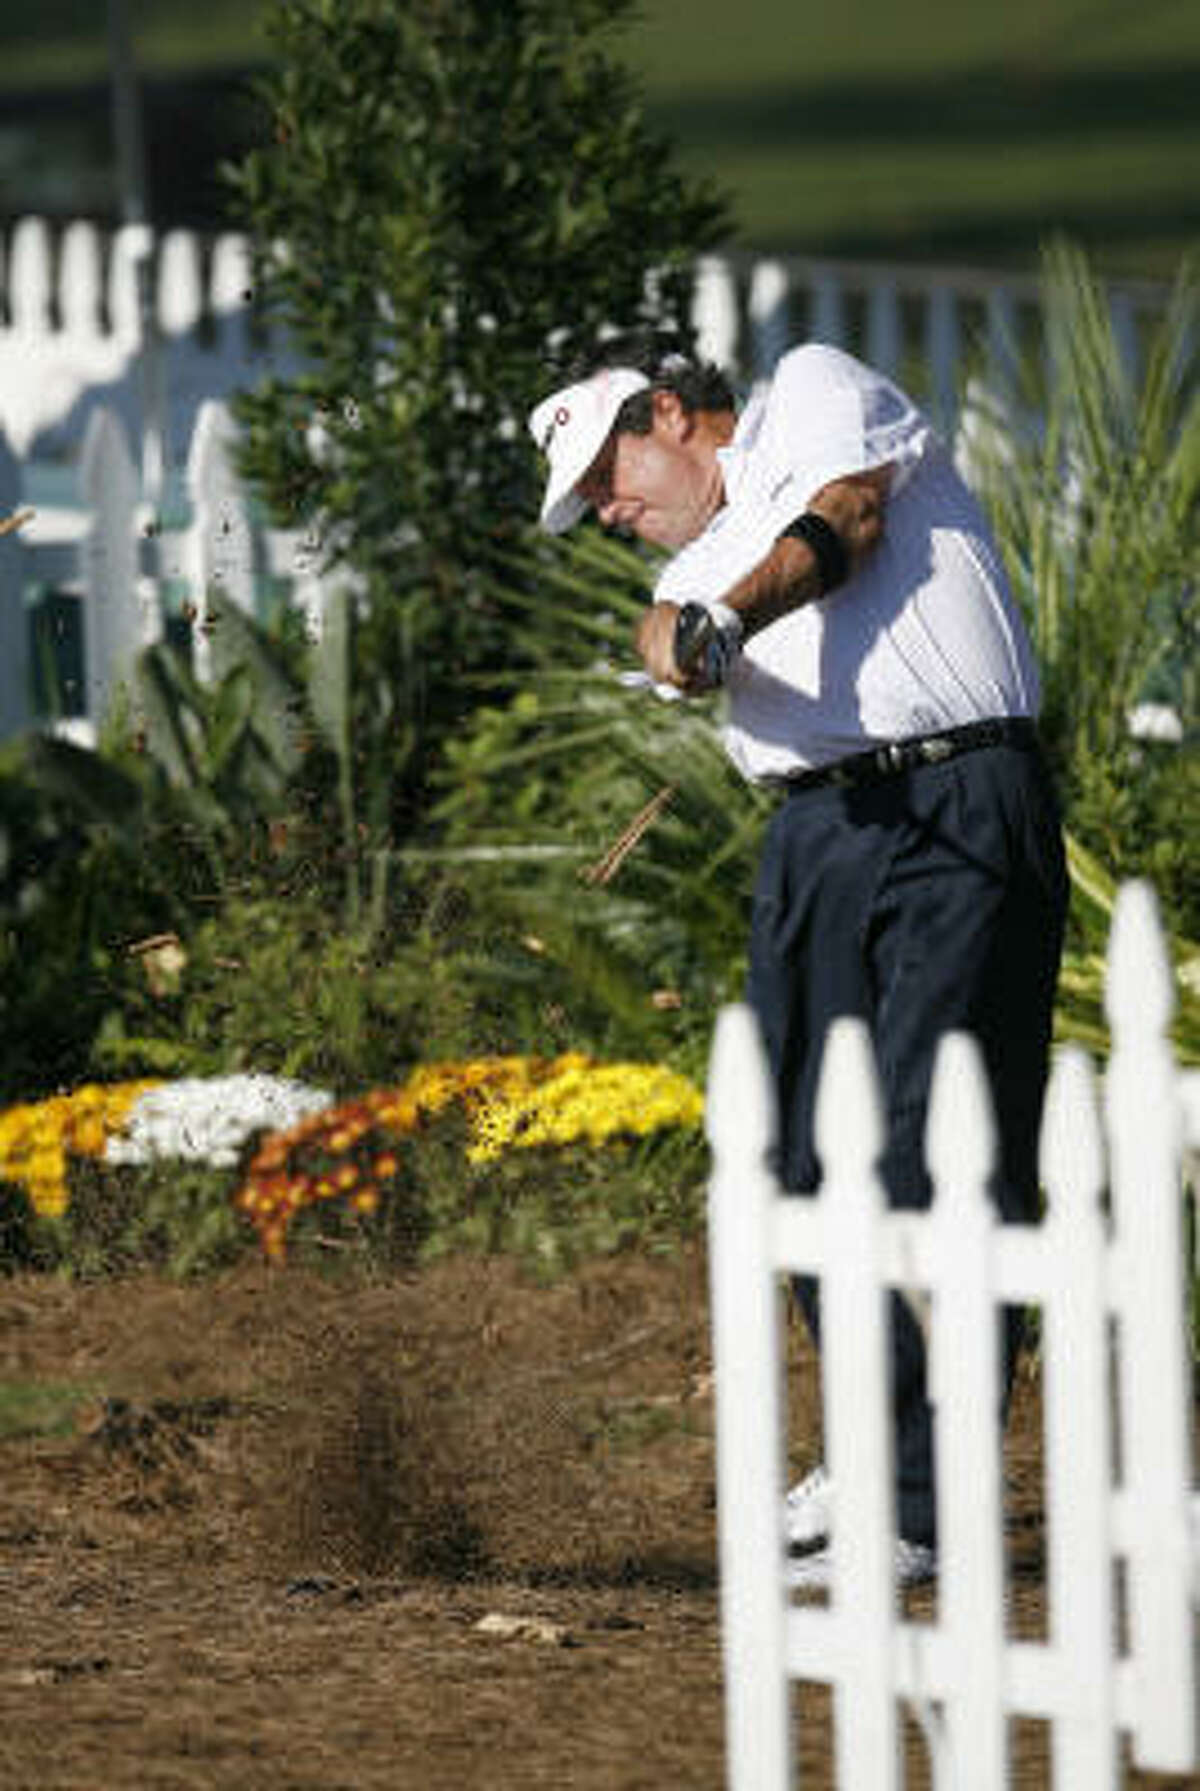 Bruce Lietzke hits his ball (which landed in the rough) on his approach on the 18th hole during Sunday's final round.